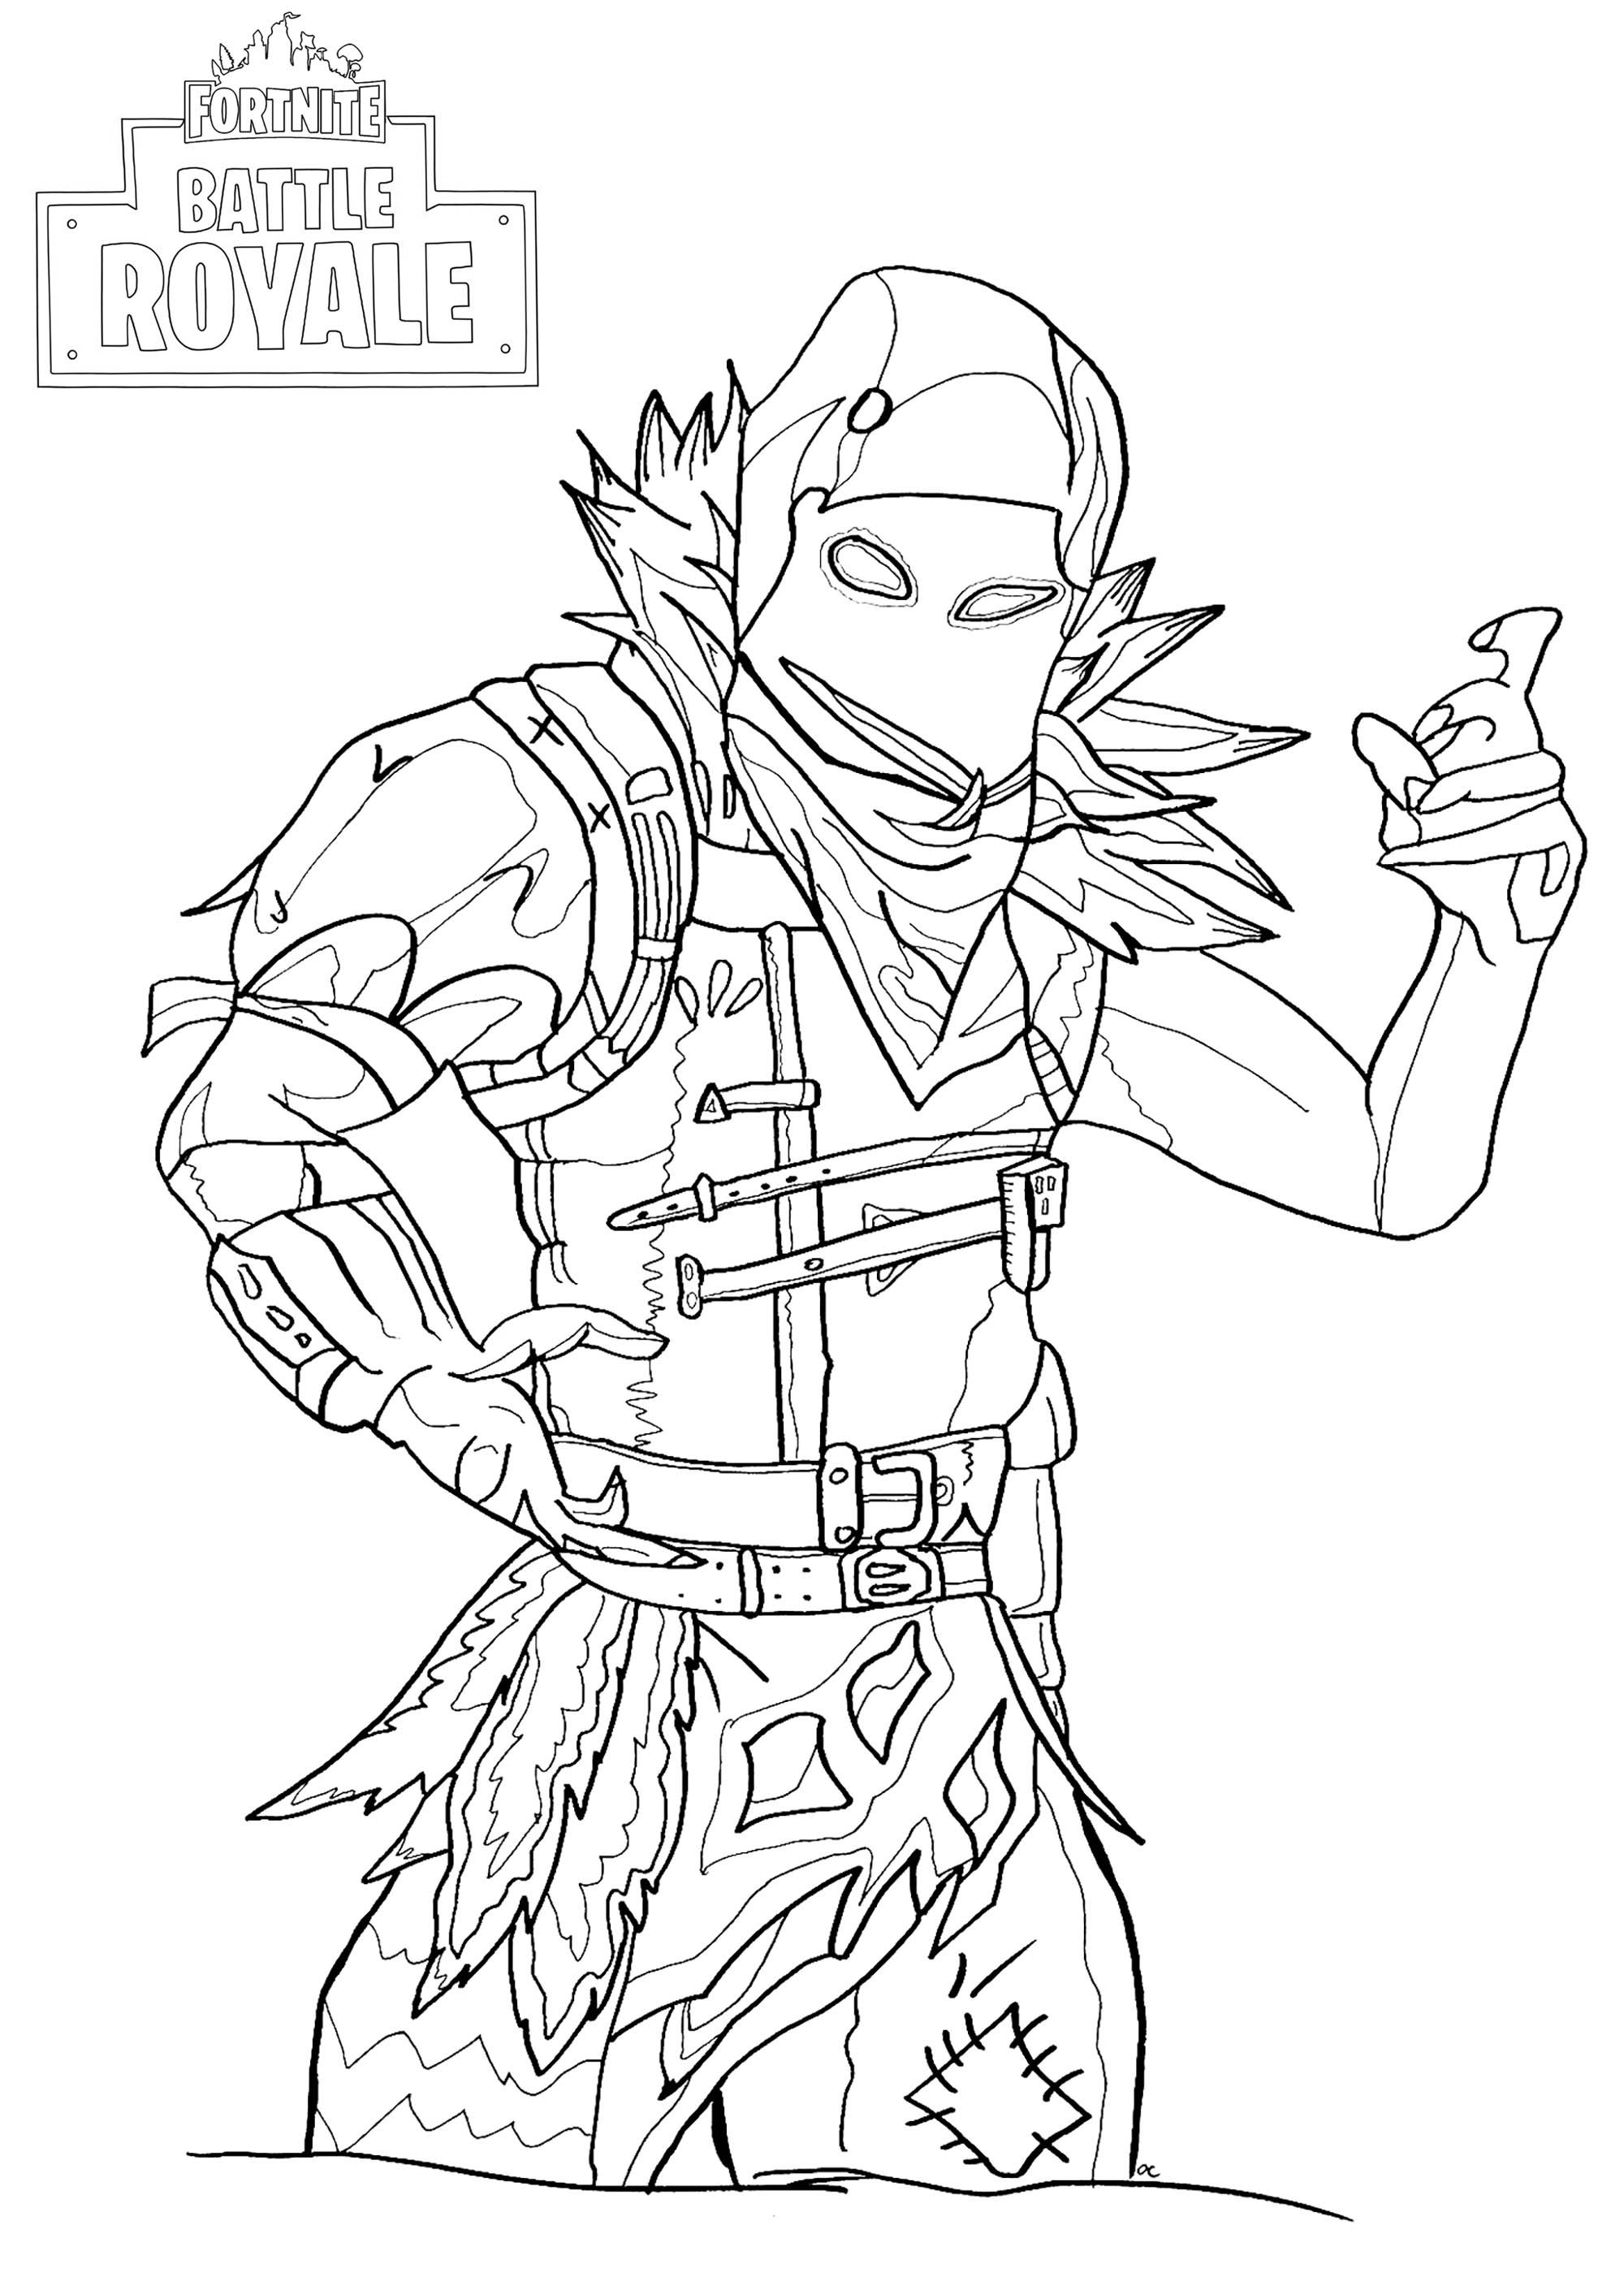 Top 10 Fortnite Coloring Pages Free Coloring Pages Coloring